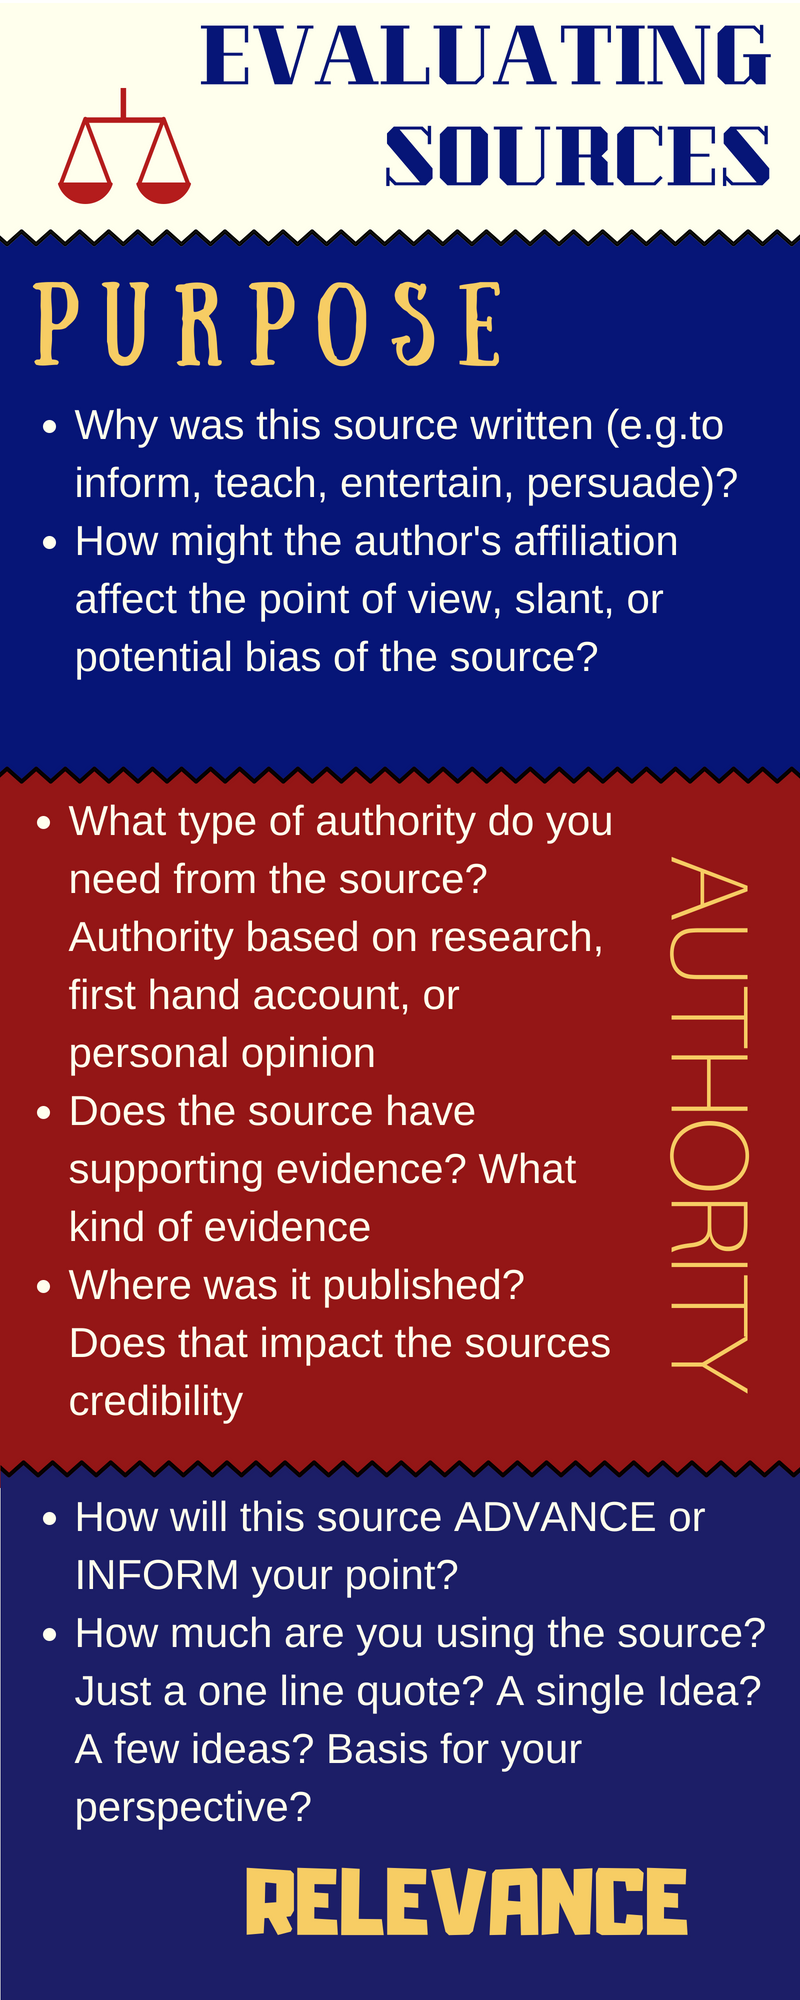 Evaluating Sources infographic. Purpose: Why was source written? Does author affiliation affect source bias? Authority: What kind of authority does teh source have? Is there supporting evidence? Relevance: Will the source advance or inform your point? How are you using the source?